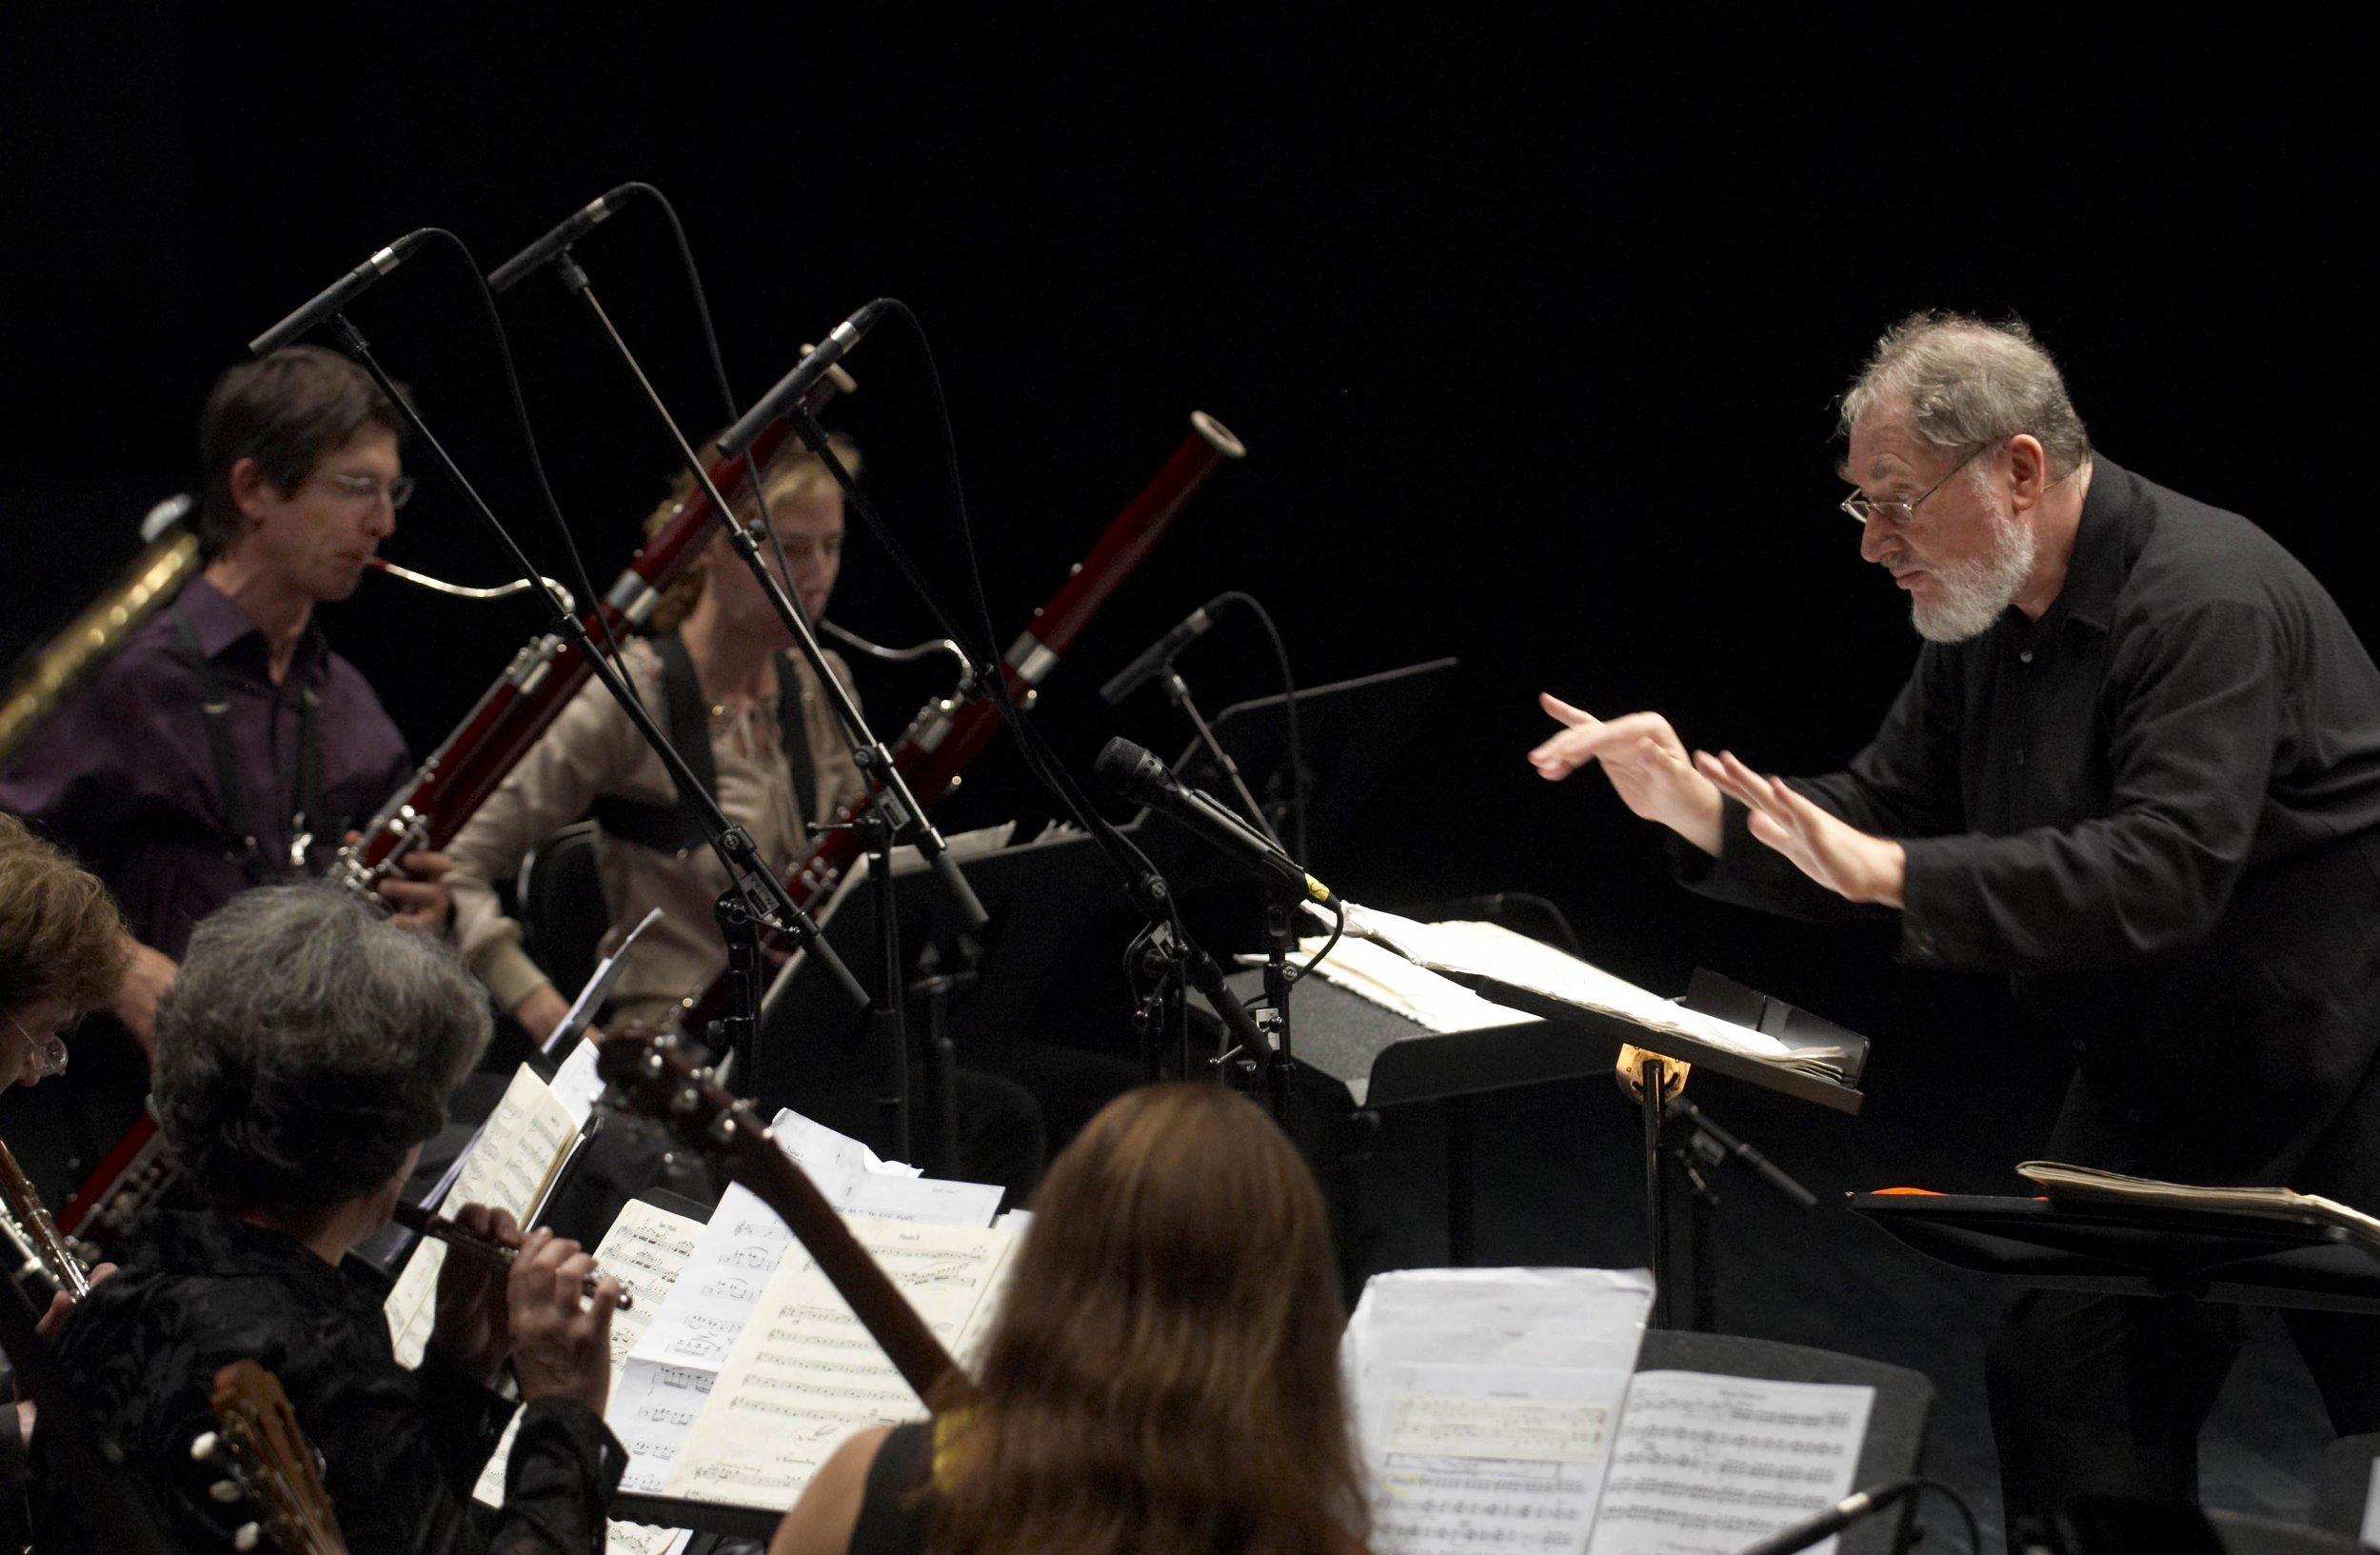 """3. Going Against Concert Hall Etiquette - """"Gruber wrote Frankenstein!! in 1974 for a full symphony orchestra. A year later, he created a chamber version for 13 players. For this performance, there will be 15 people on stage: 13 players, a conductor, and a chansonnier. It's the Winnipeg premiere of the piece, and it's relatively unusual at the Good Will. It skews the lines between classical and cabaret. There are toy instruments played. One of the descriptors for the chansonnier is, 'as singing in the bath.' It's not meant to be stuffy or typically classical, as far as convention goes. It goes against concert hall etiquette and performance practice."""""""